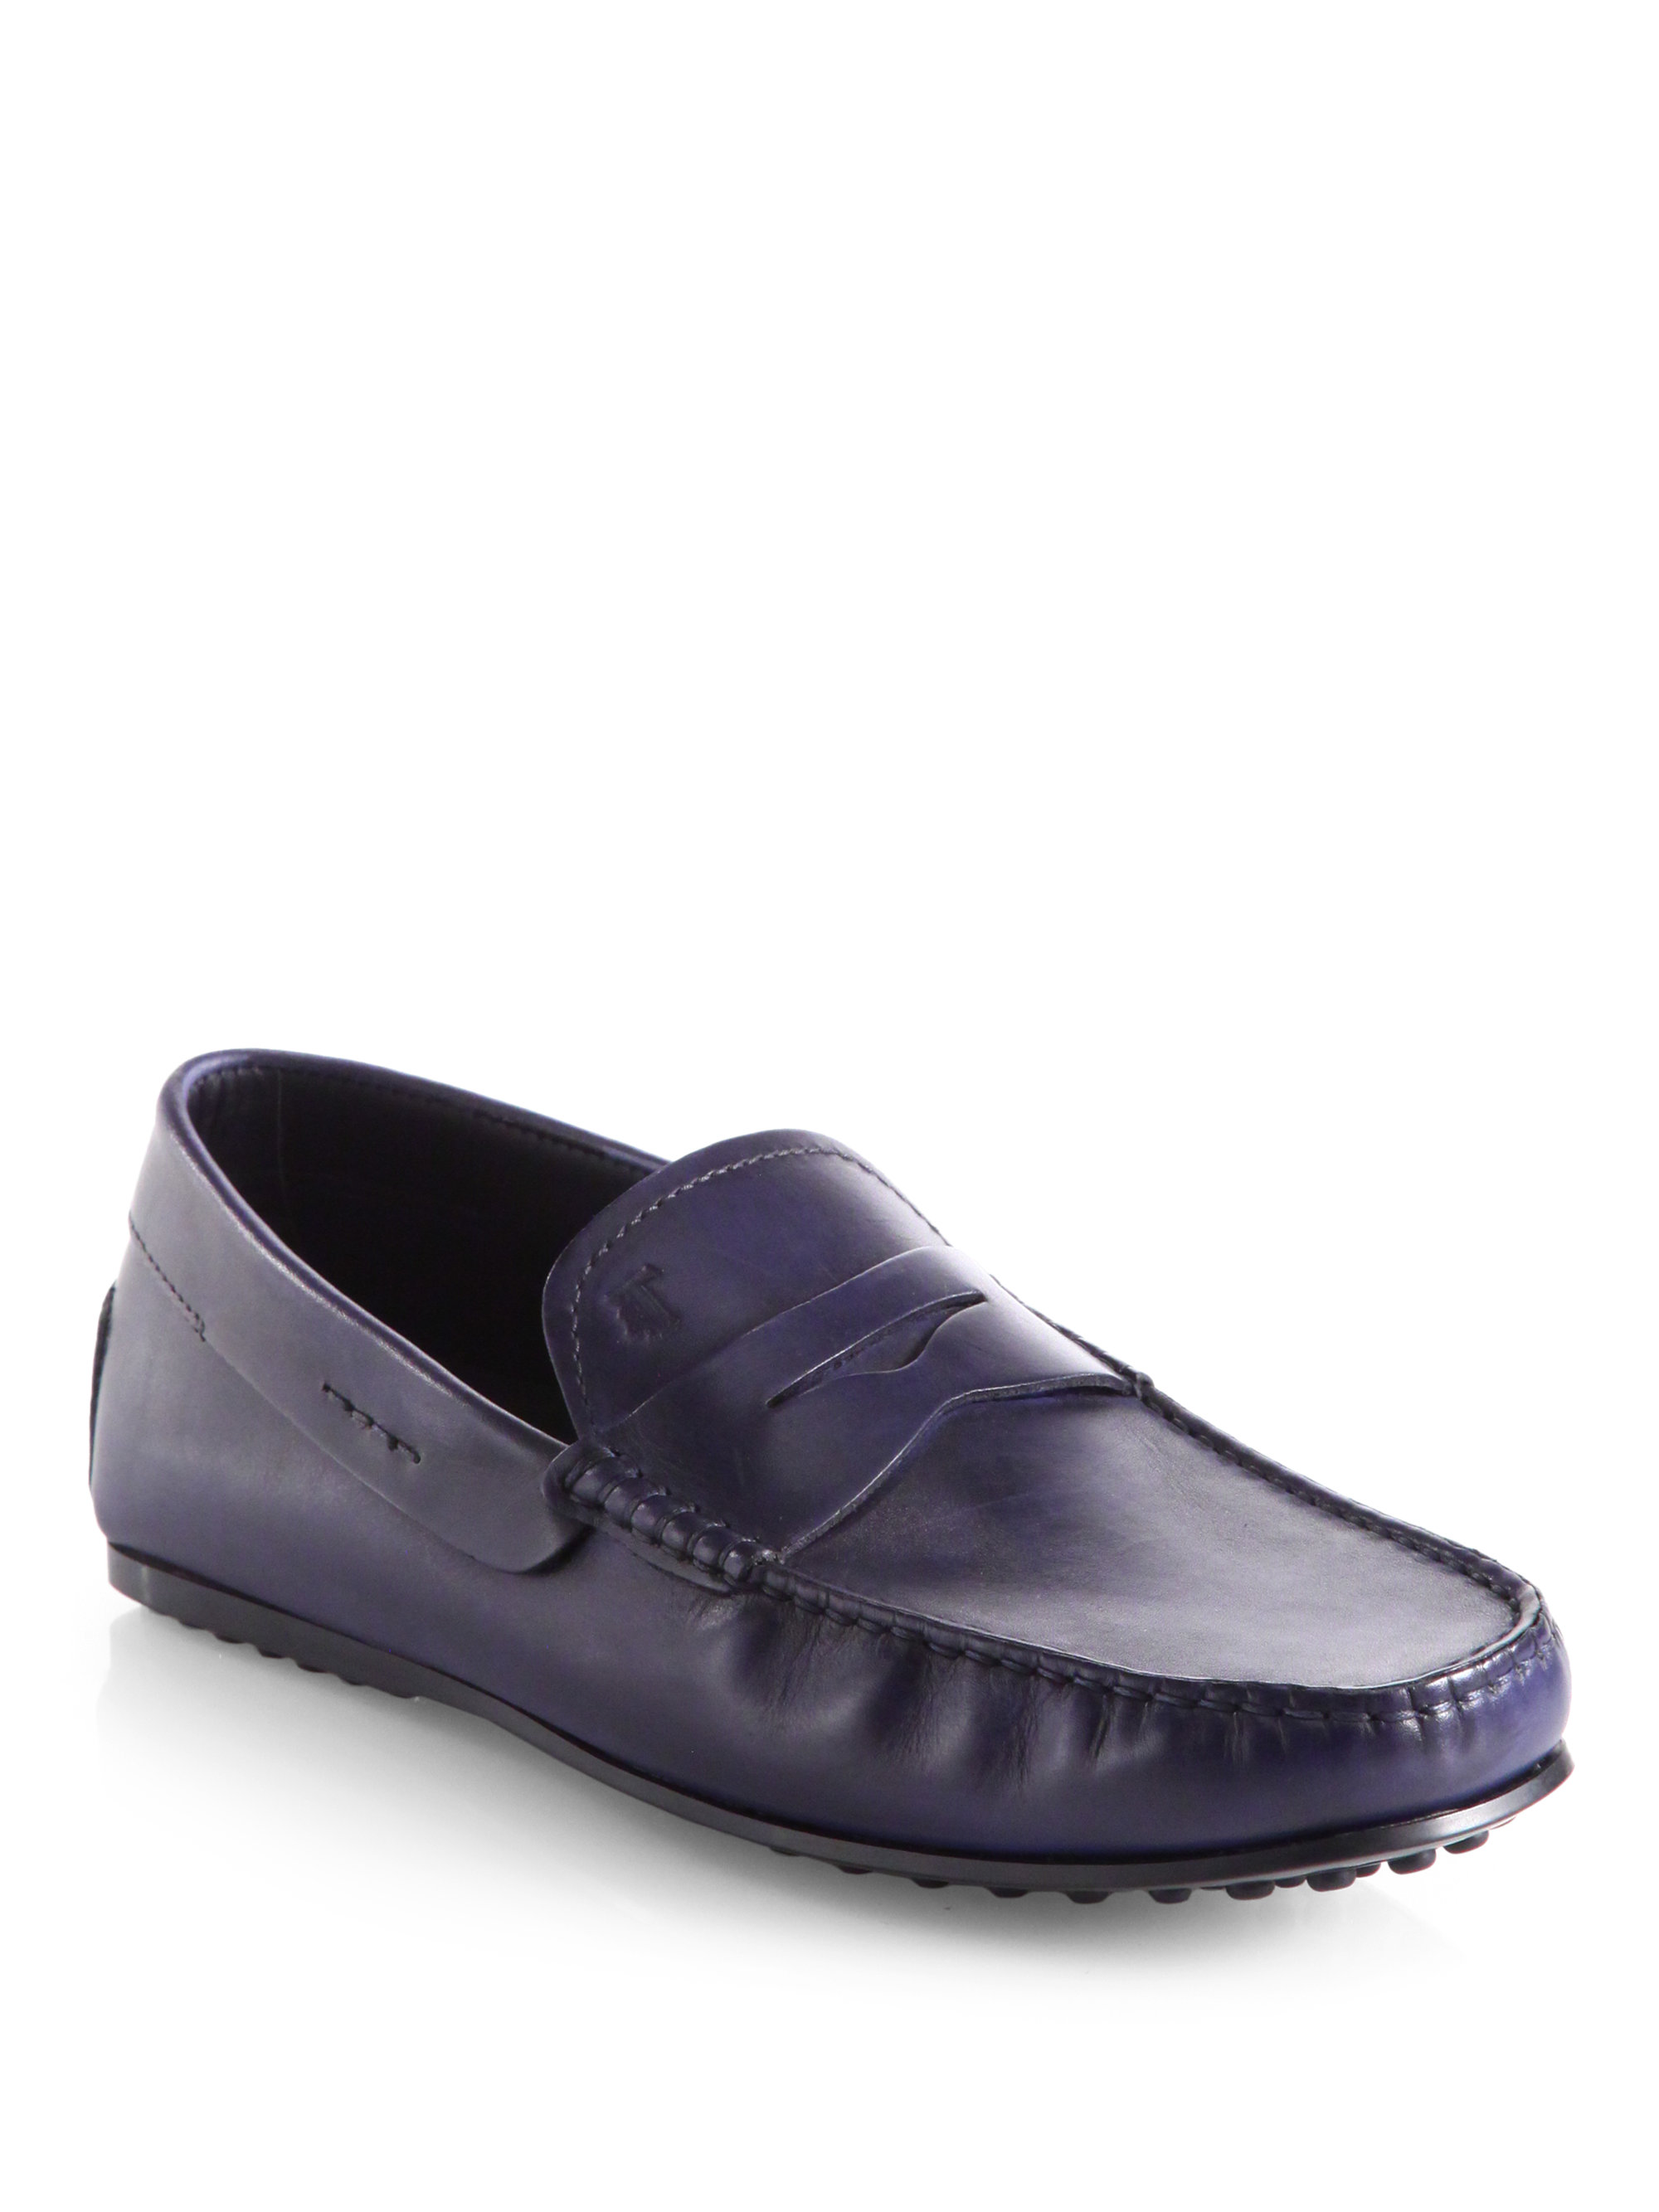 Saks Mens Shoes Tods